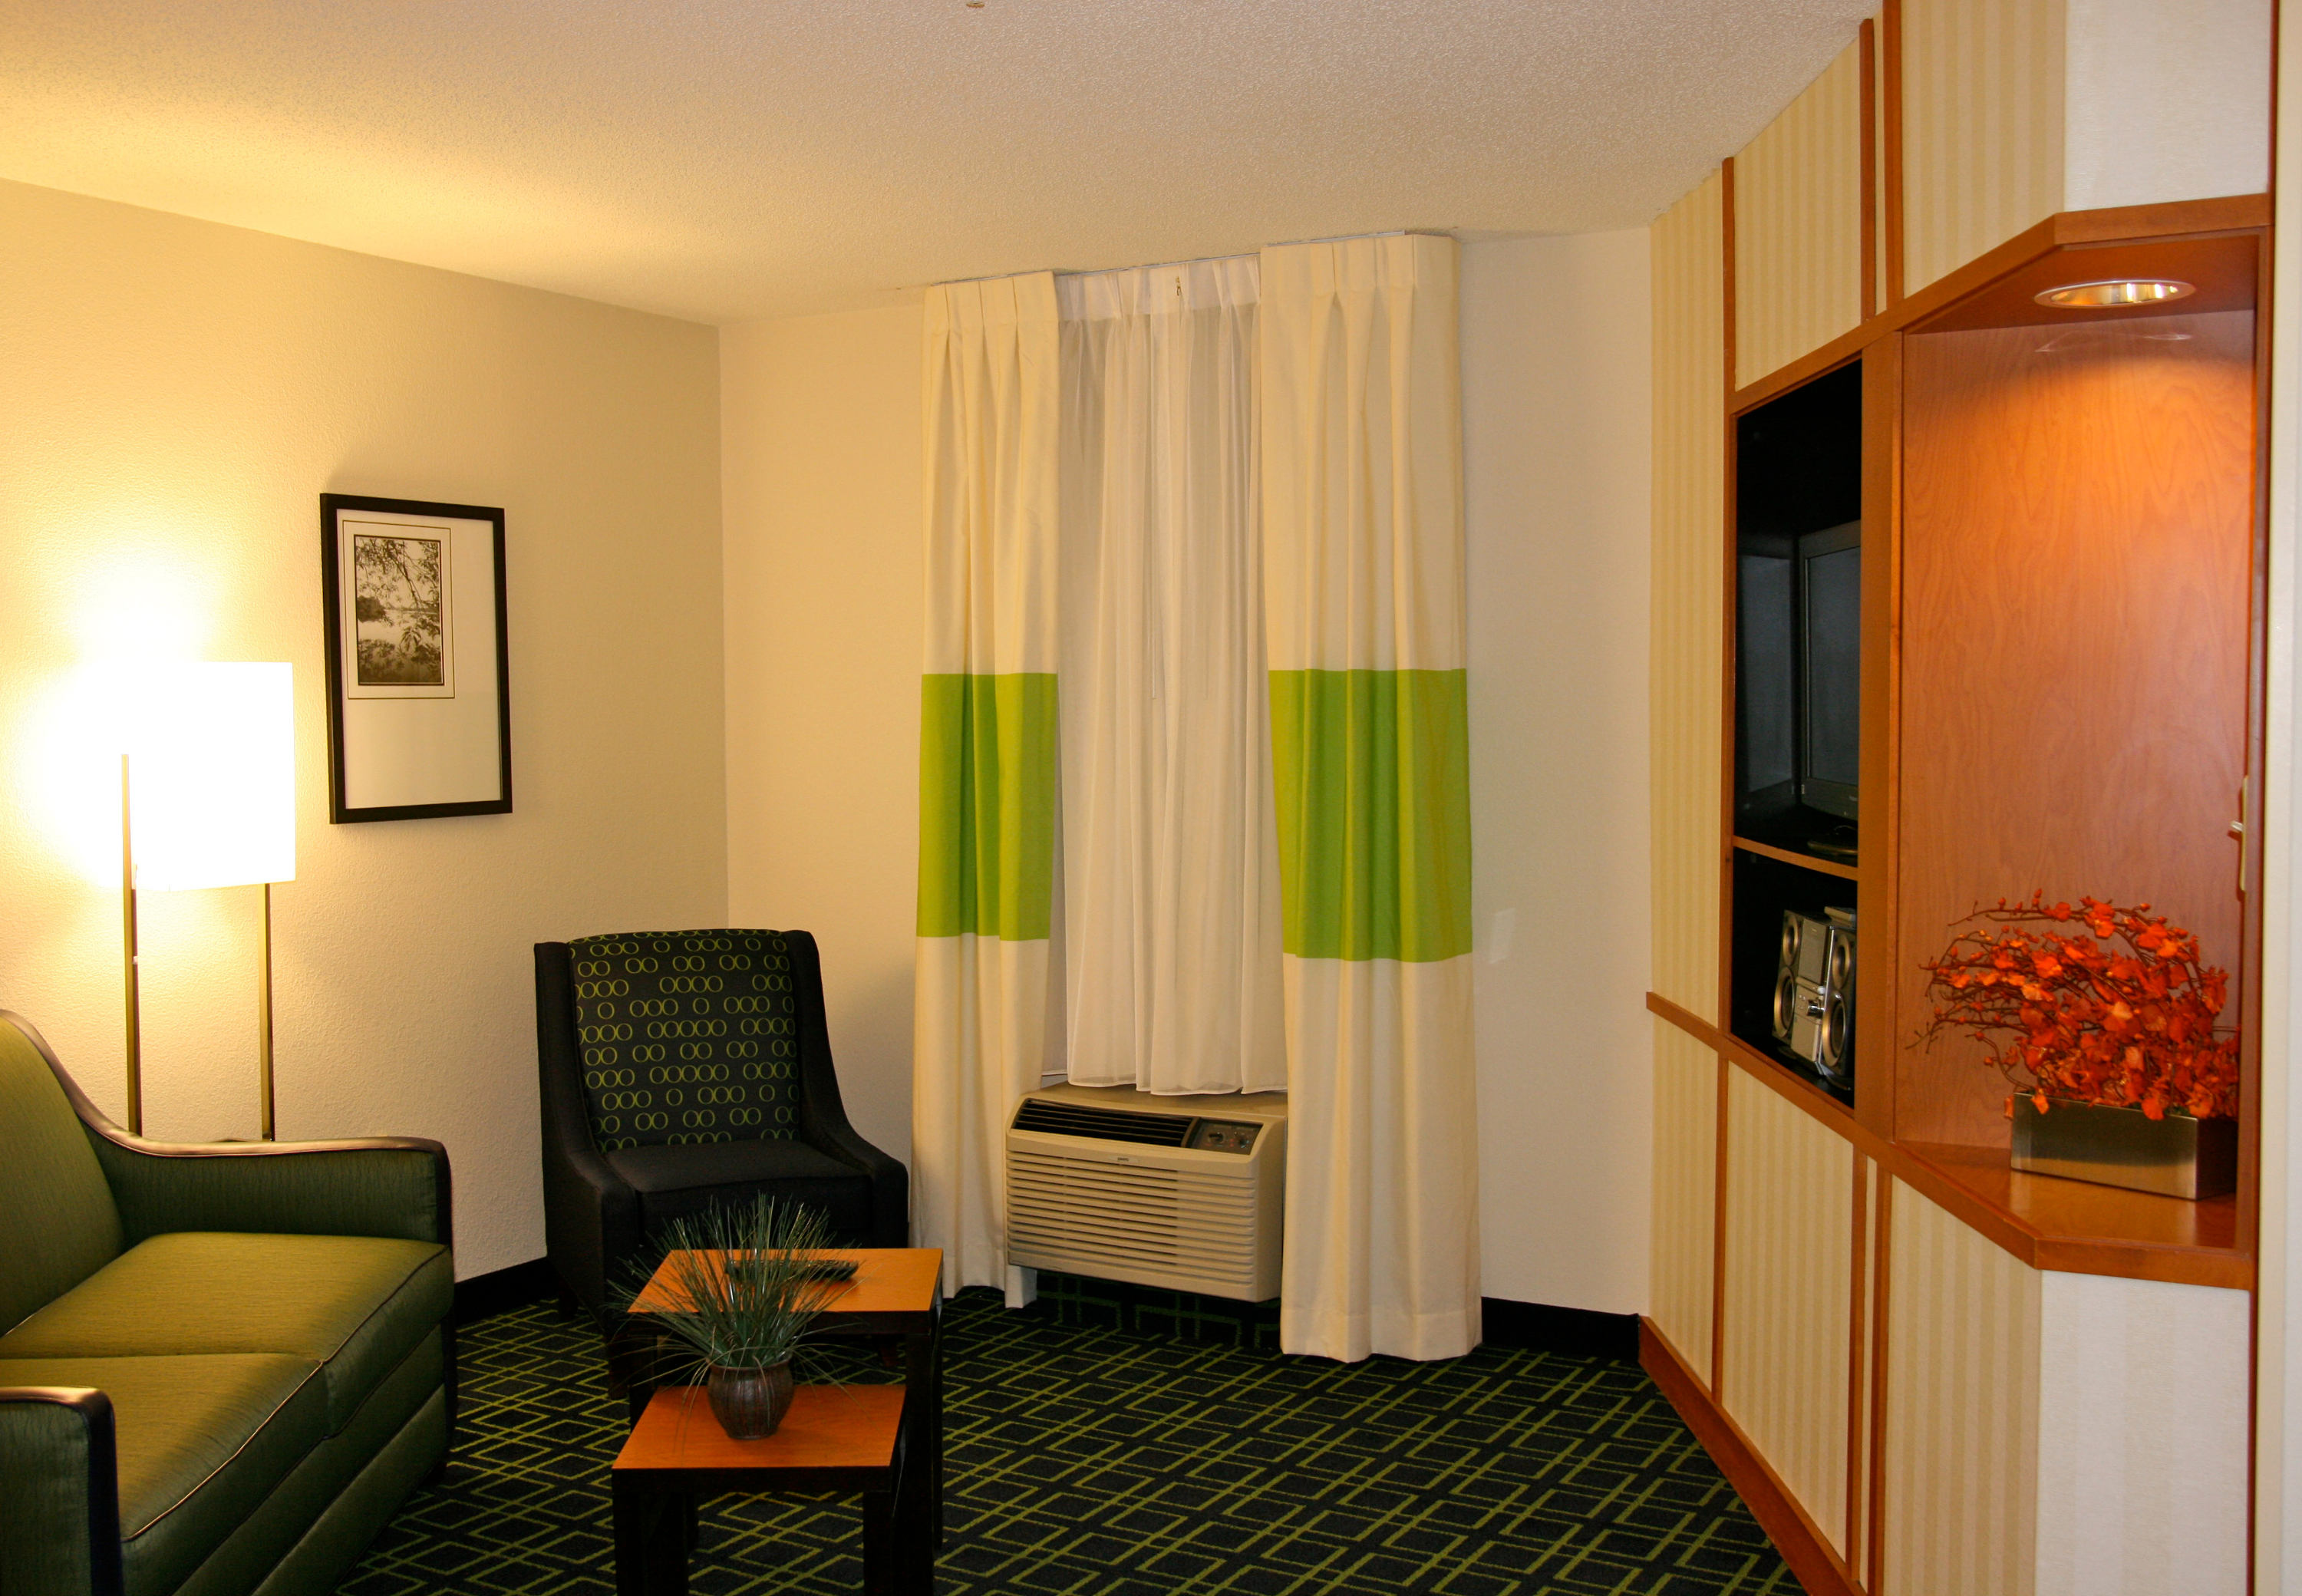 Fairfield Inn & Suites by Marriott Youngstown Austintown image 0